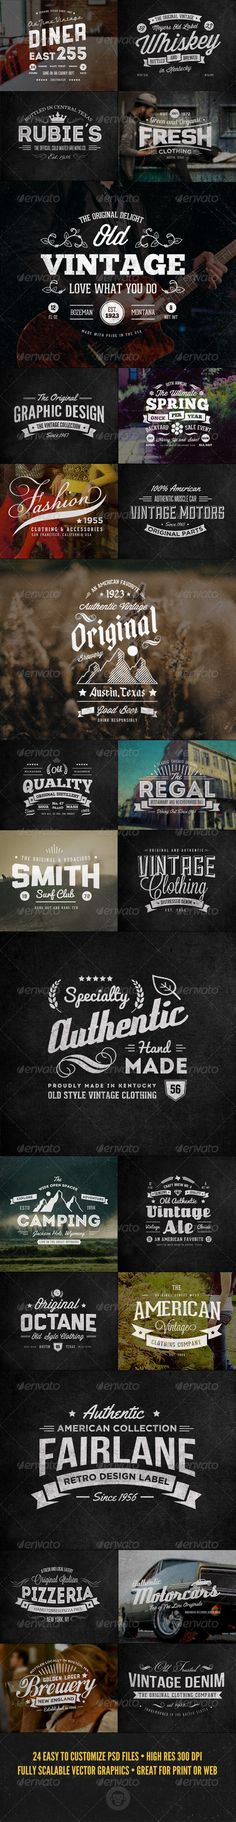 Buy 24 Vintage Labels and Logos Bundle by GraphicMonkee on GraphicRiver. Overview This collection features 24 vintage or retro styled labels. These could be used as web badges, logos, or pri. Vintage Typography, Typography Logo, Typography Design, Vintage Labels, Retro Vintage, Badge Design, Design Reference, Graphic Design Inspiration, Vintage Designs